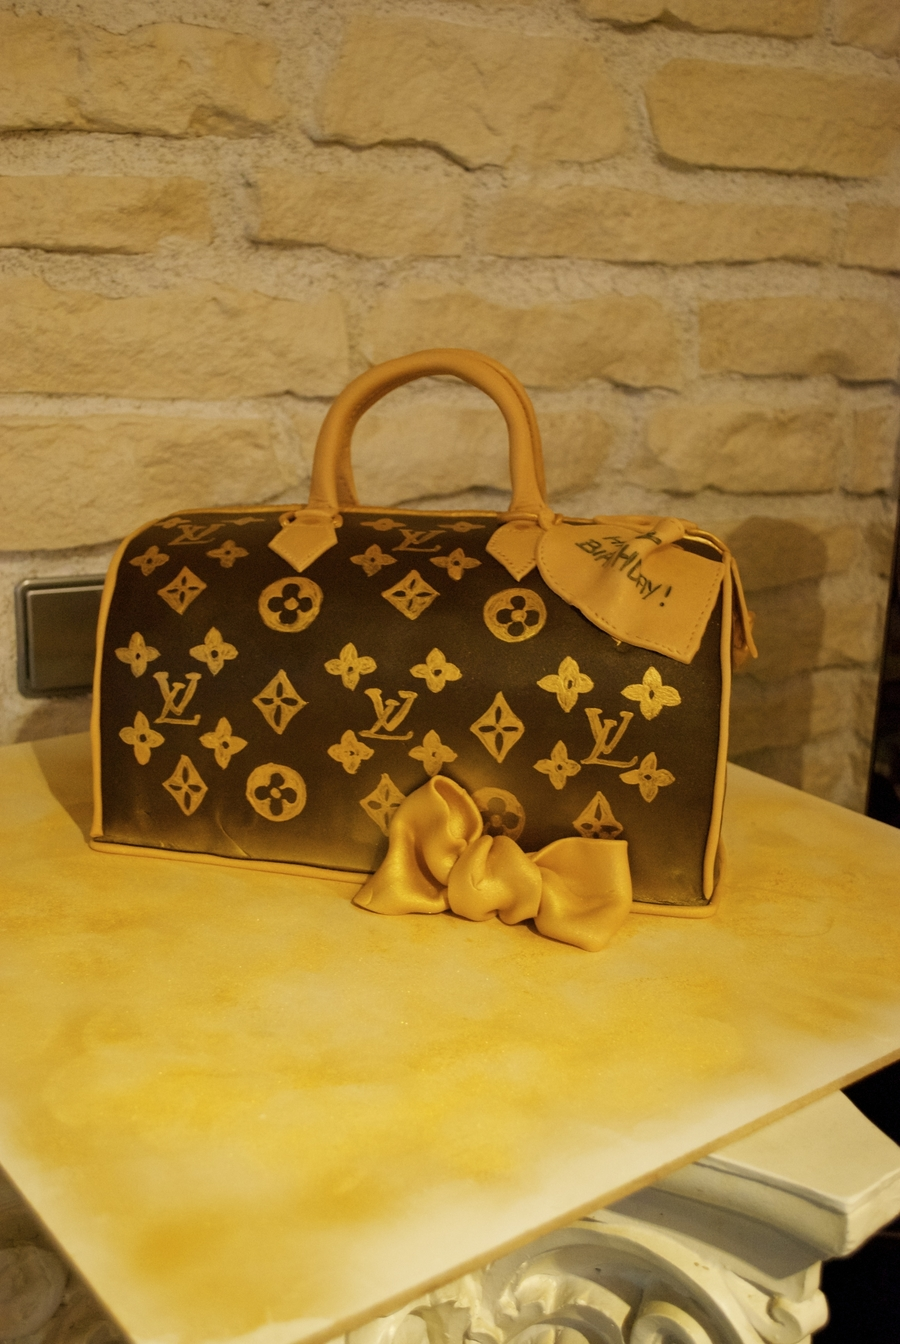 Louis Vuitton Speedy30 on Cake Central